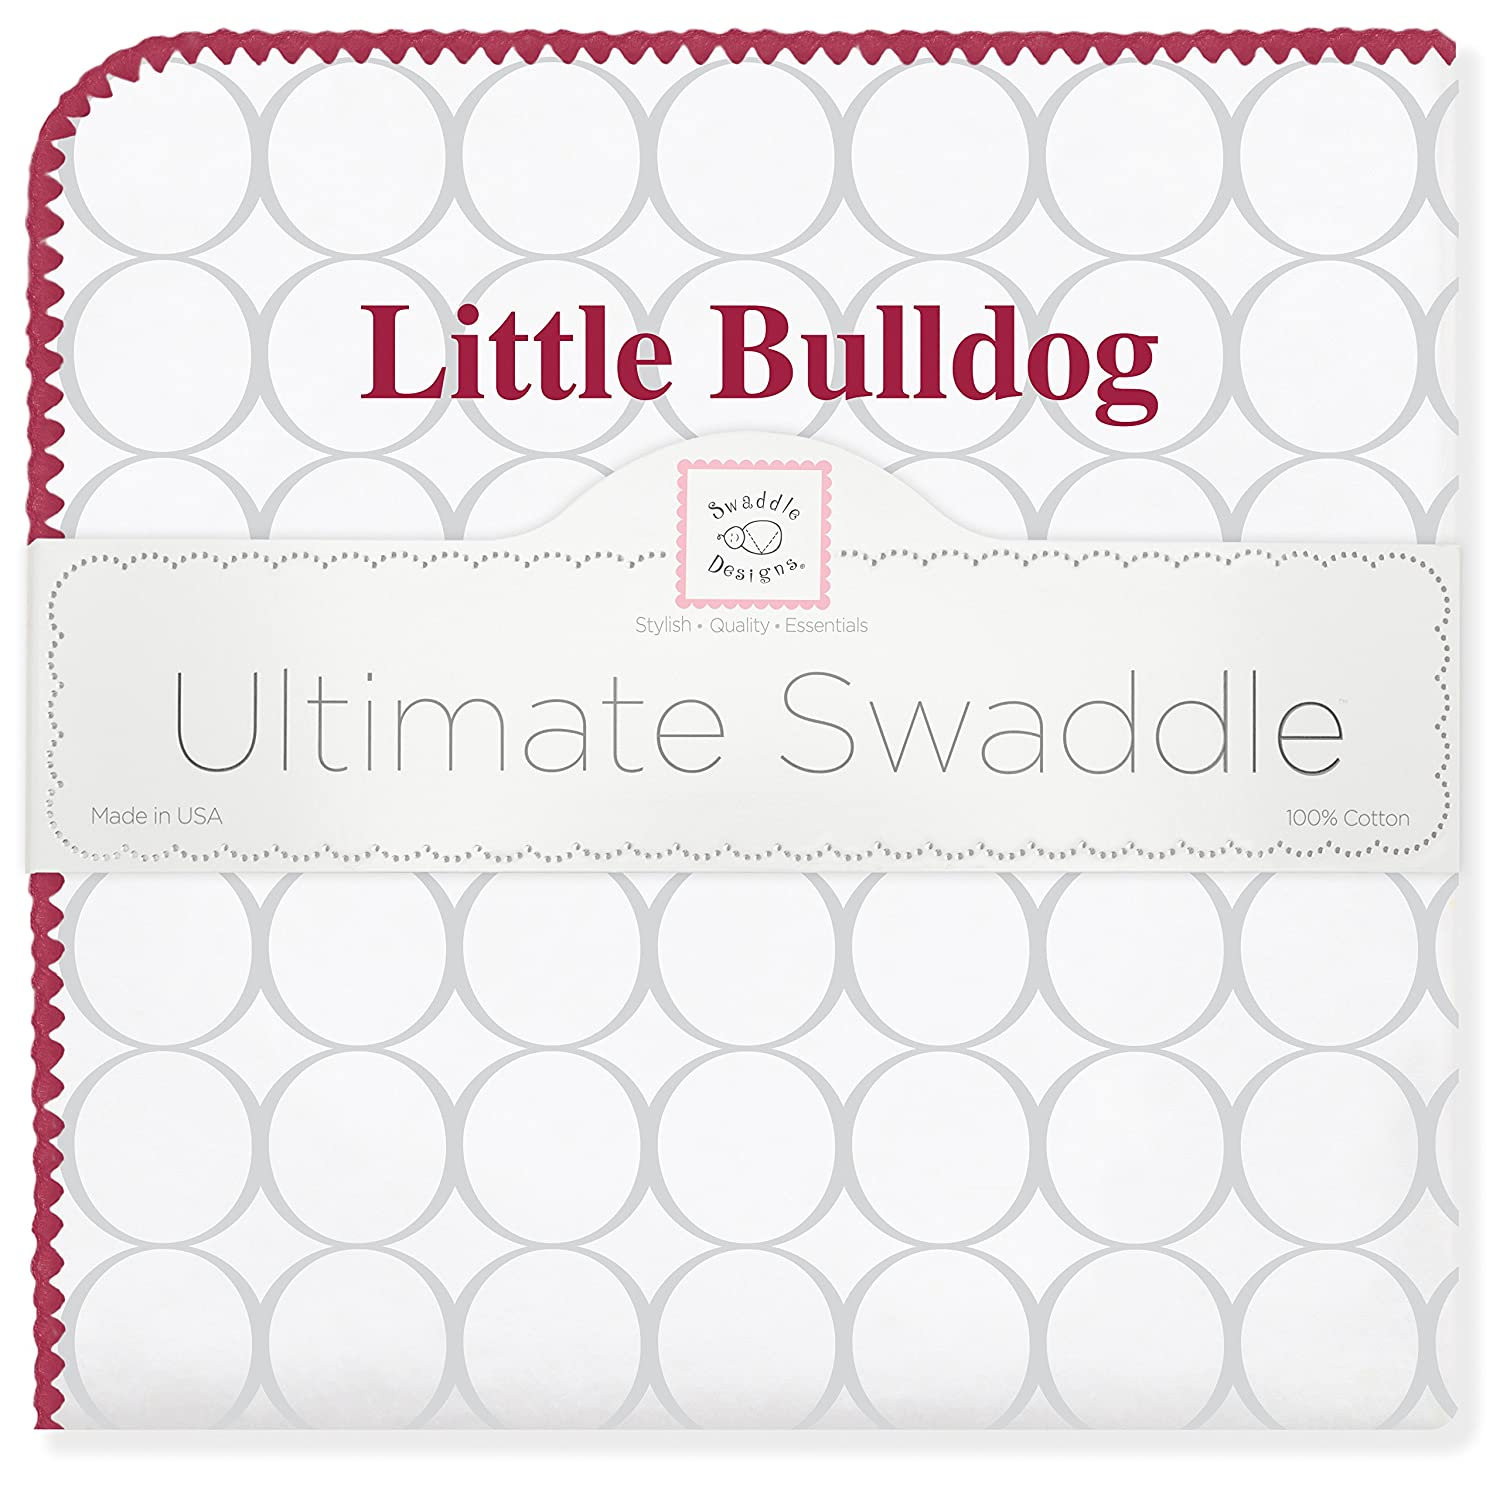 SwaddleDesigns Ultimate Winter Swaddle, X-Large Receiving Blanket, Made in USA, Premium Cotton Flannel, Mississippi State University, Little Bulldog (Mom's Choice Award Winner)